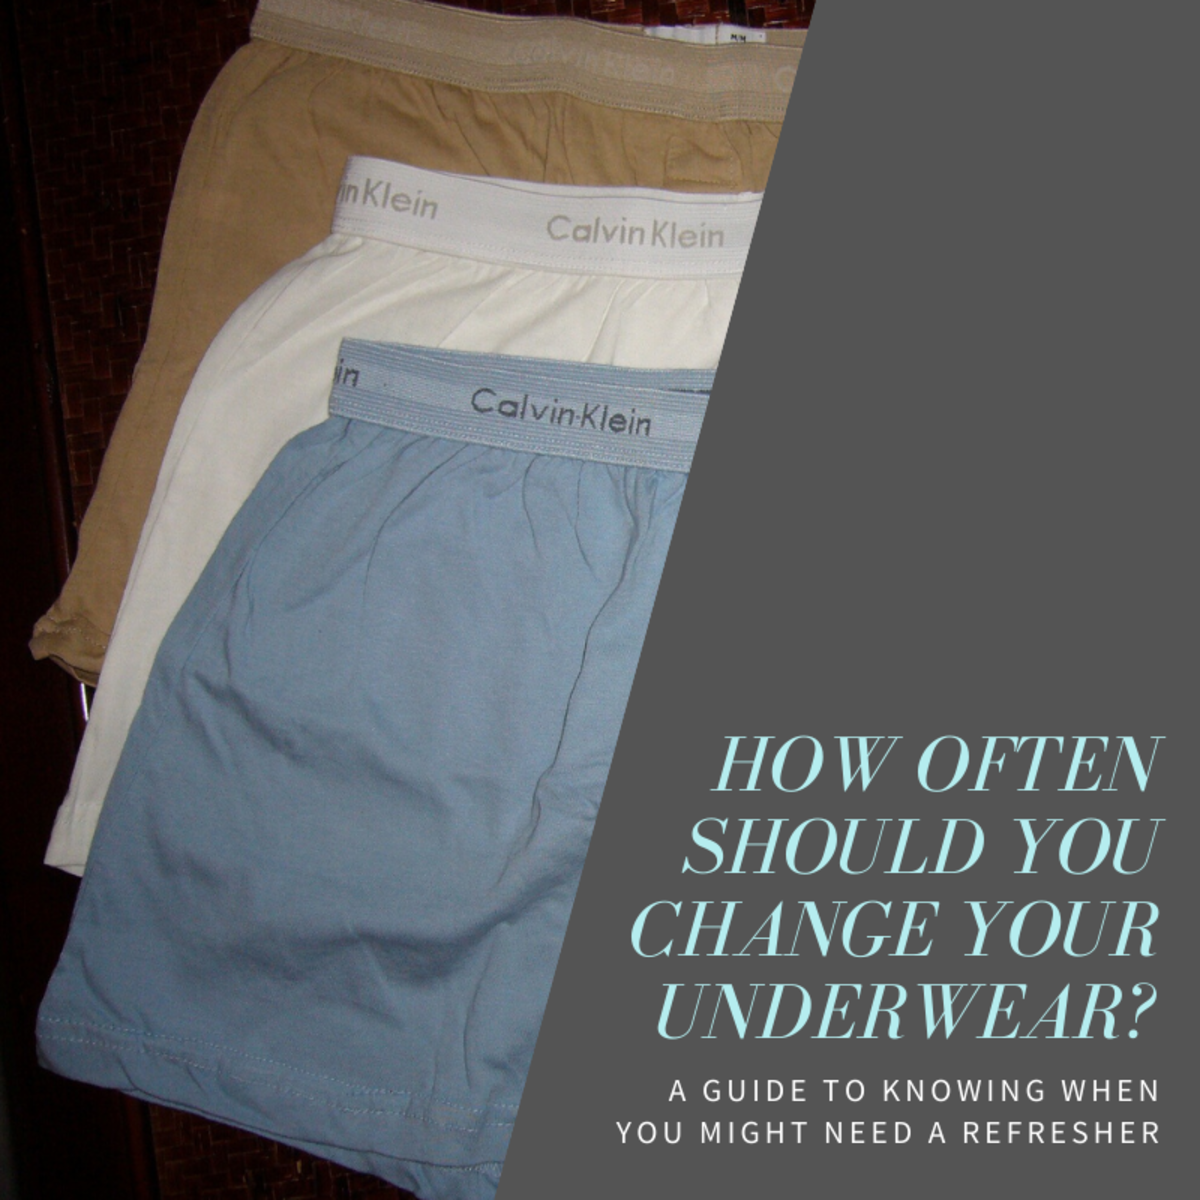 How Often Should You Change Your Underwear?